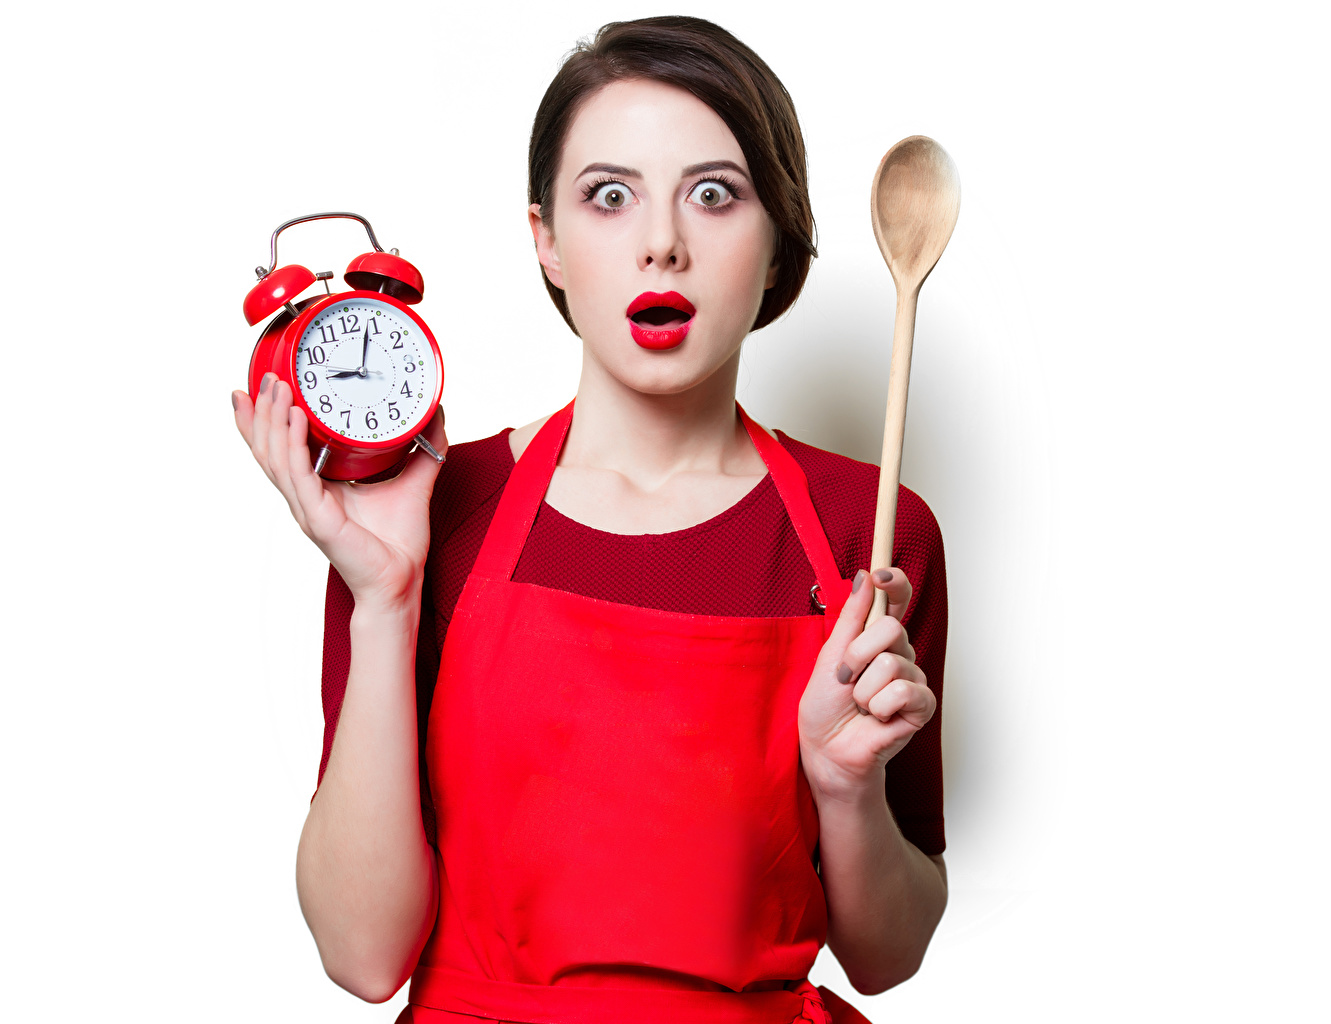 Desktop Wallpapers Brown haired Surprise emotion Clock Girls Alarm clock Spoon Red lips White background surprised amazement female young woman